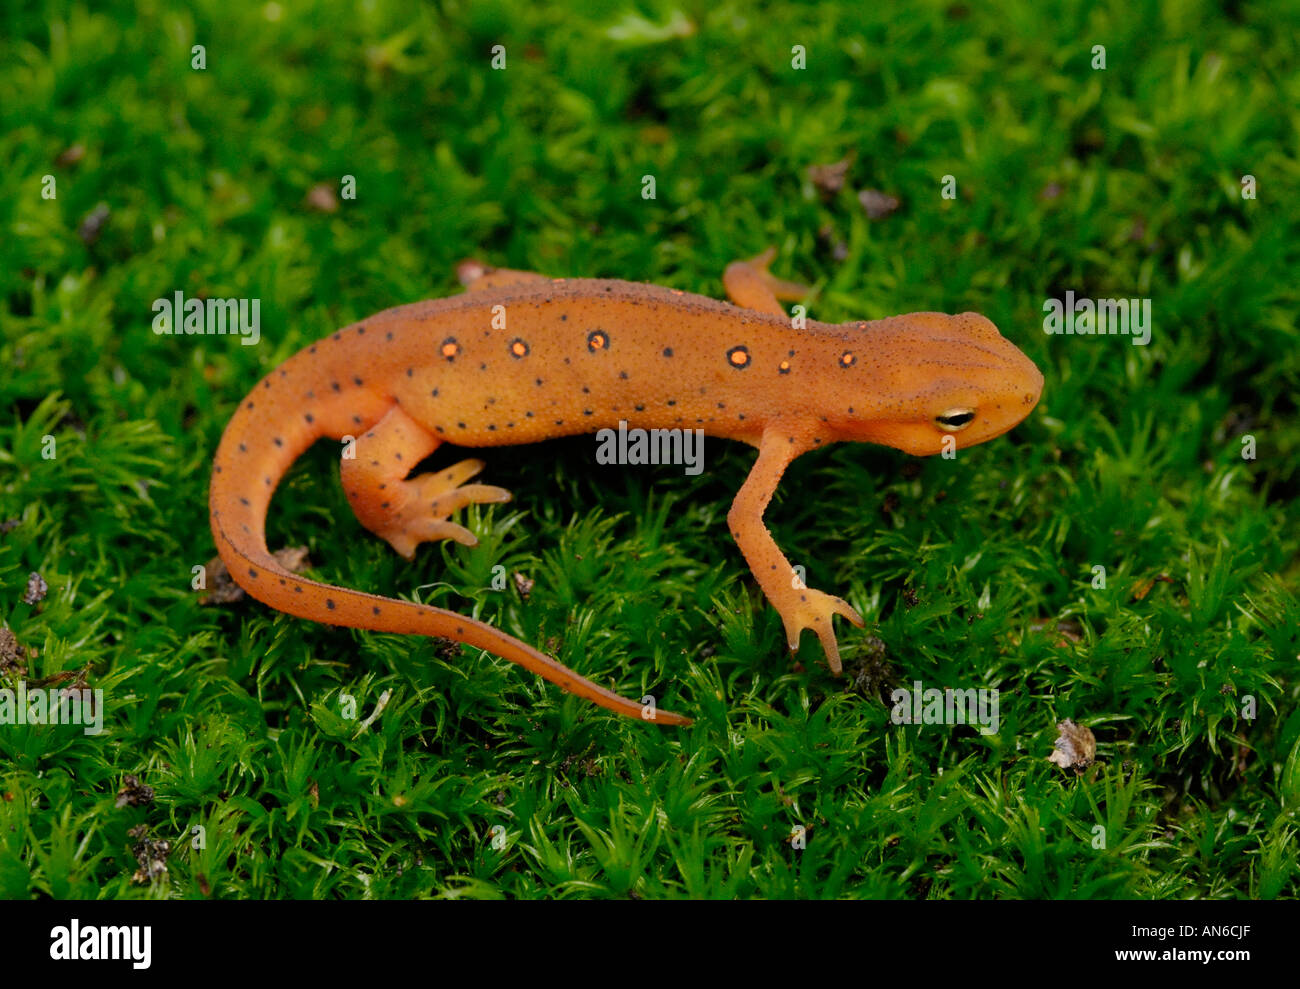 Eastern (or 'red-spotted') newt Notophthalmus viridescens juvenile in red eft stage - Stock Image